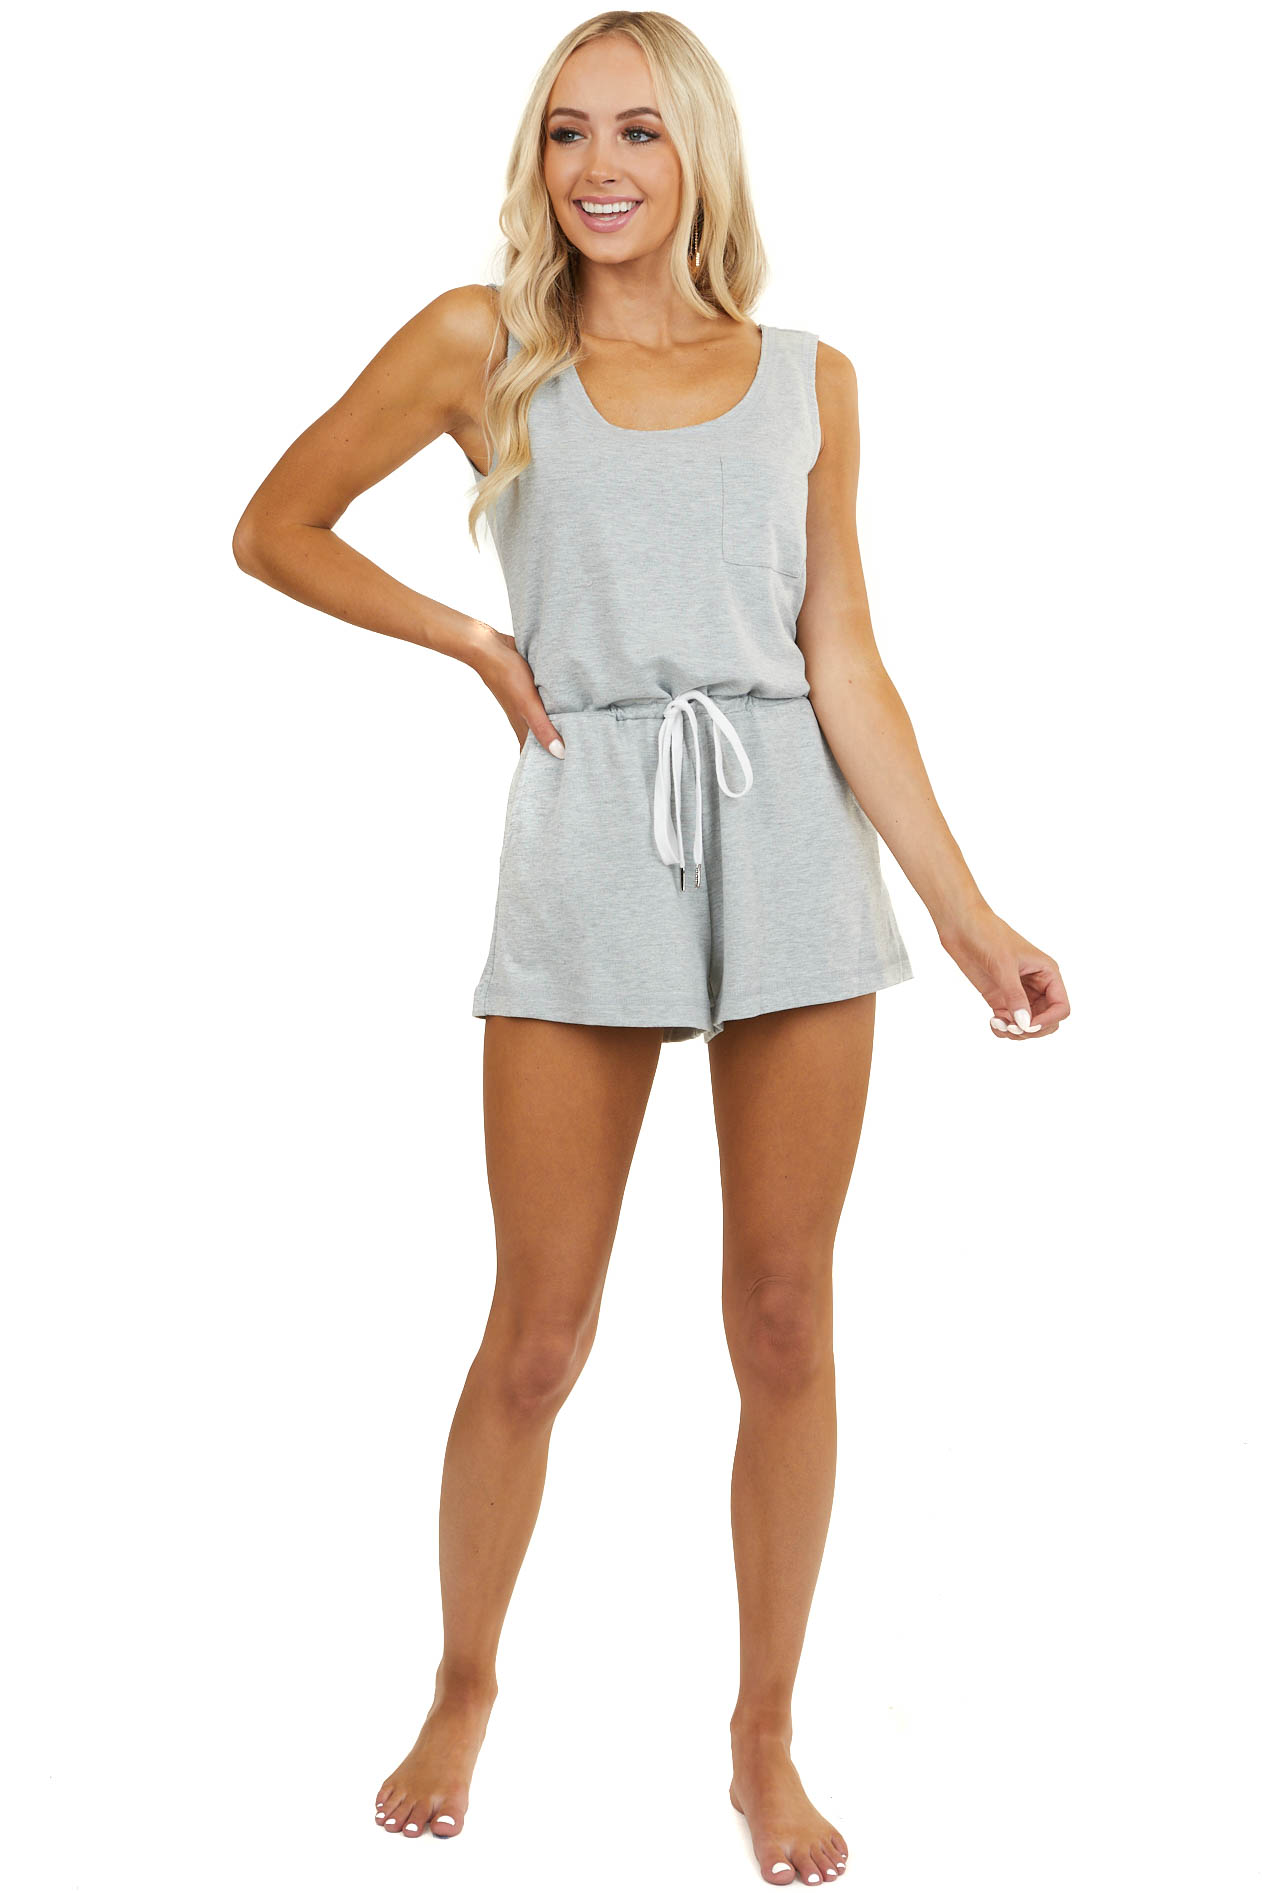 Dove Grey Sleeveless Knit Romper with Drawstring and Pockets